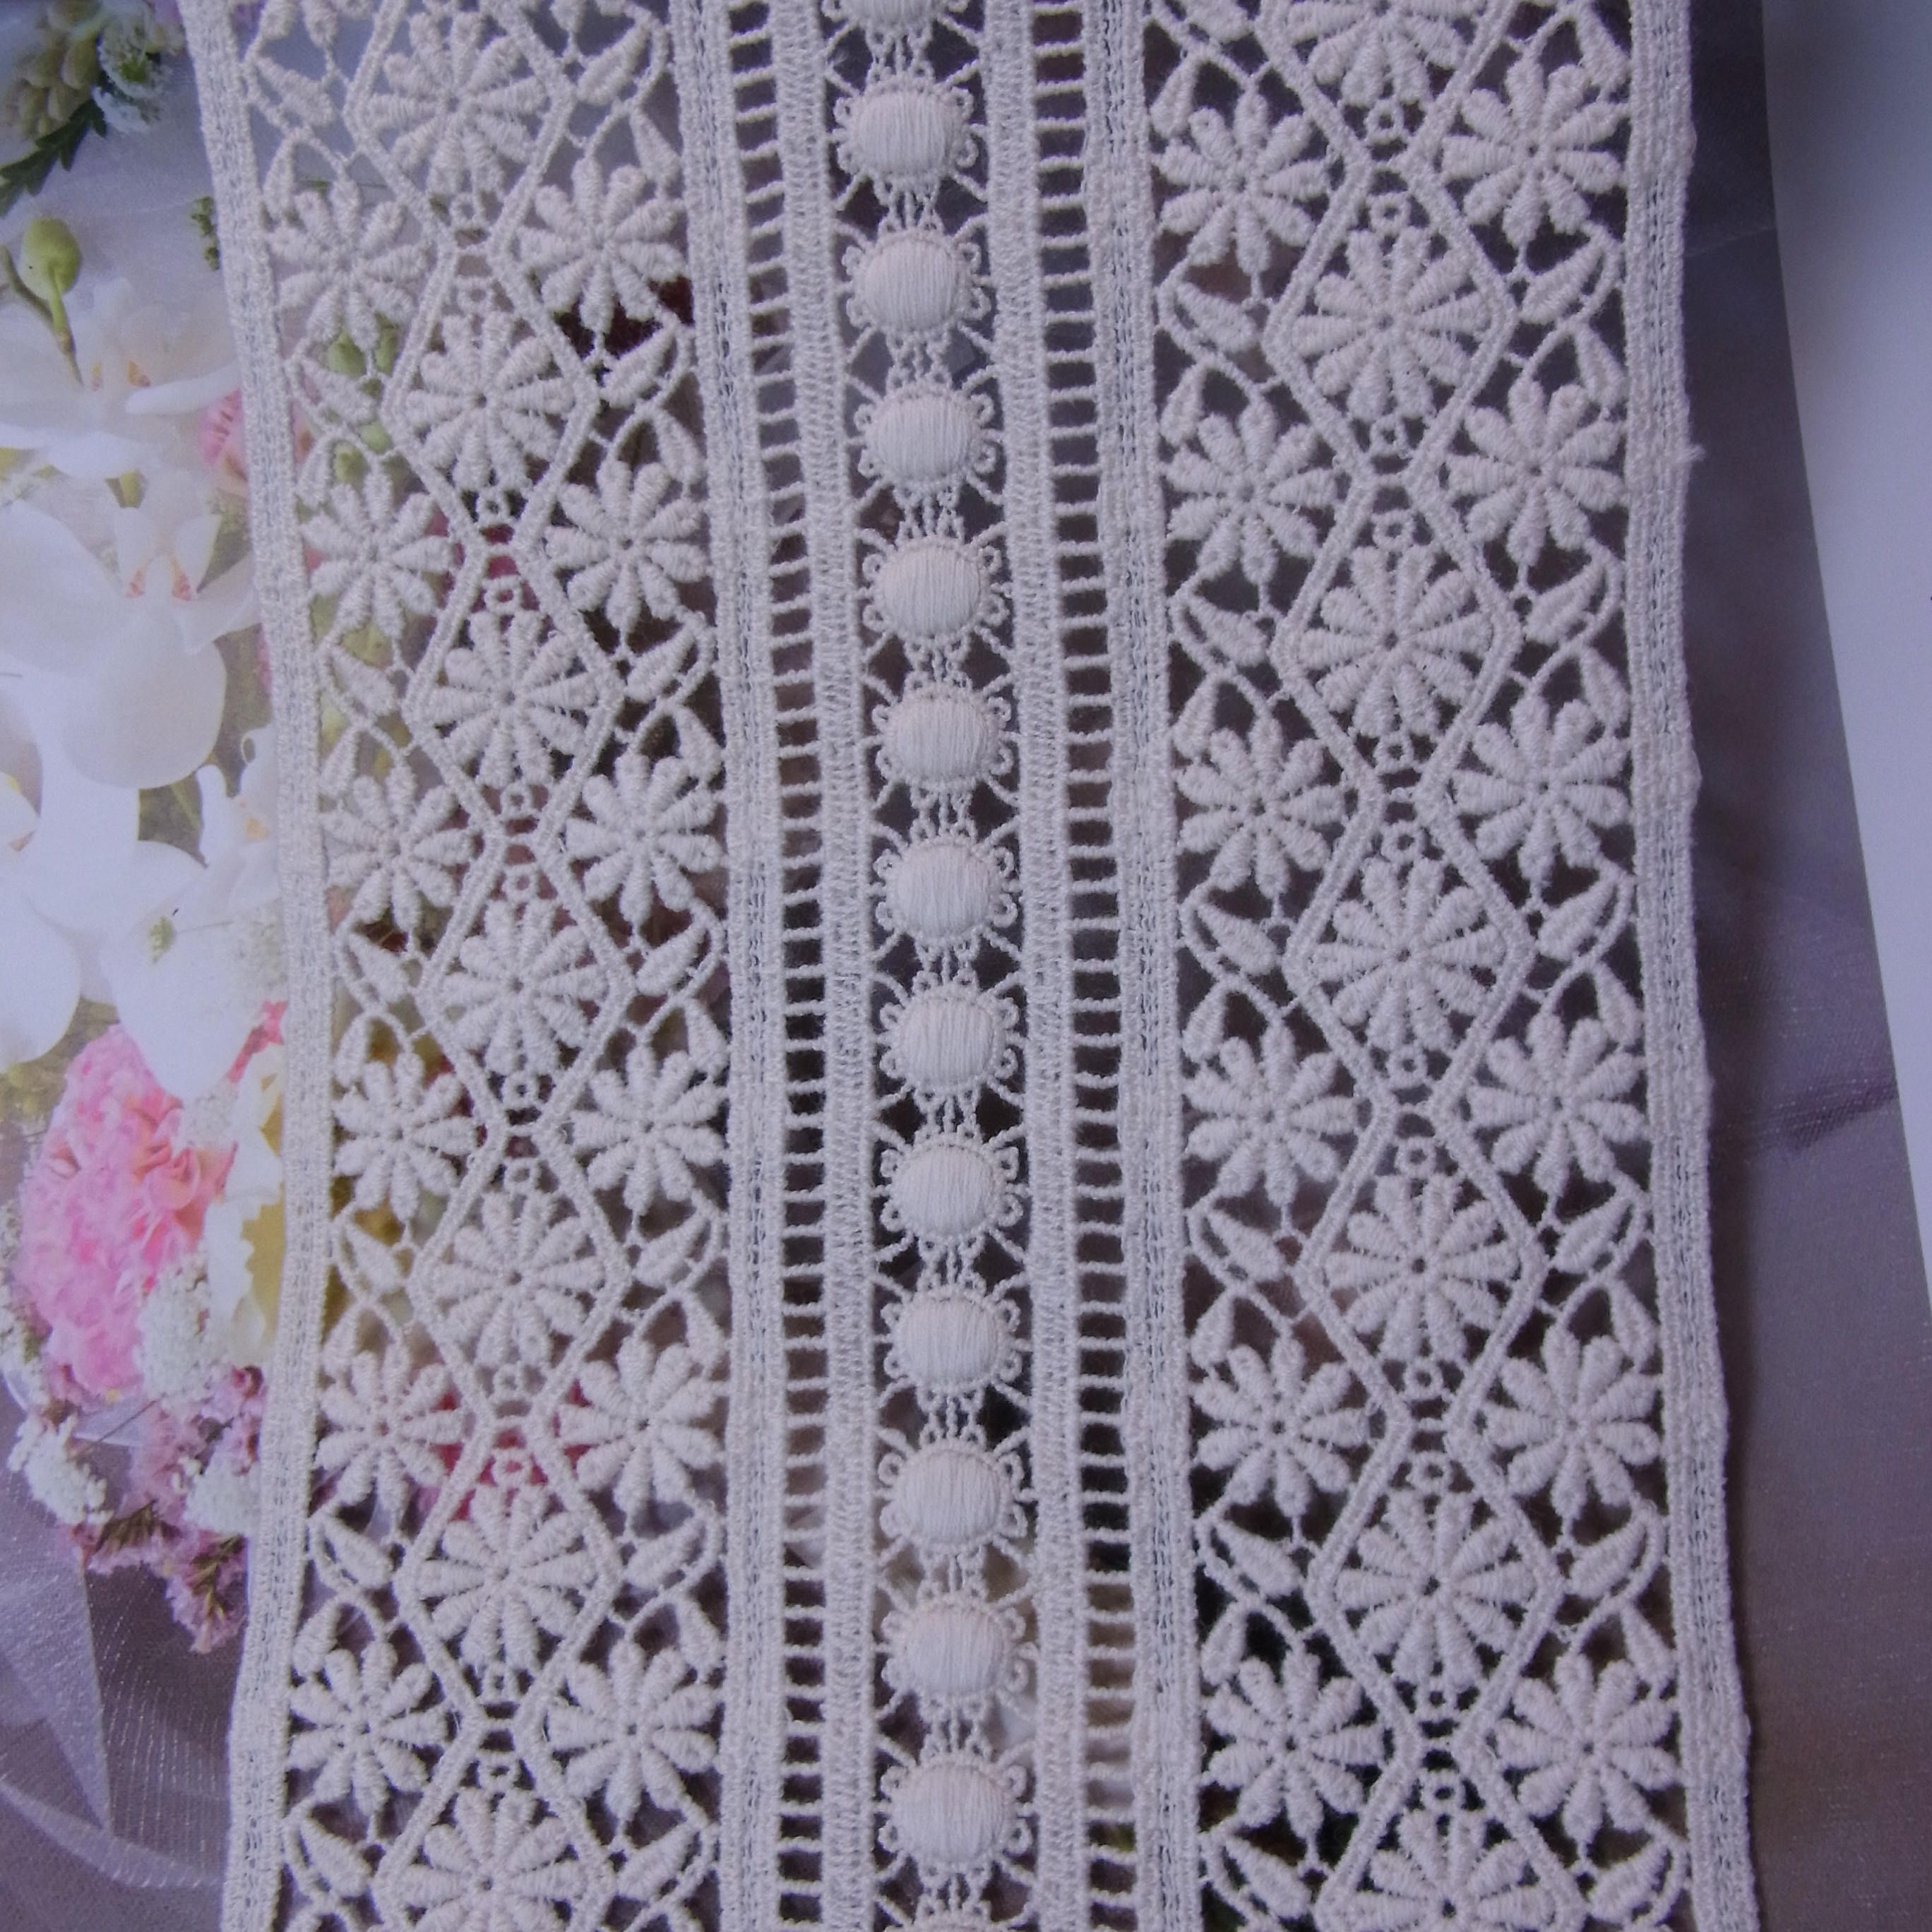 1yard Antique Style scalloped Embroidery Cotton Fabric Crochet Lace Trim